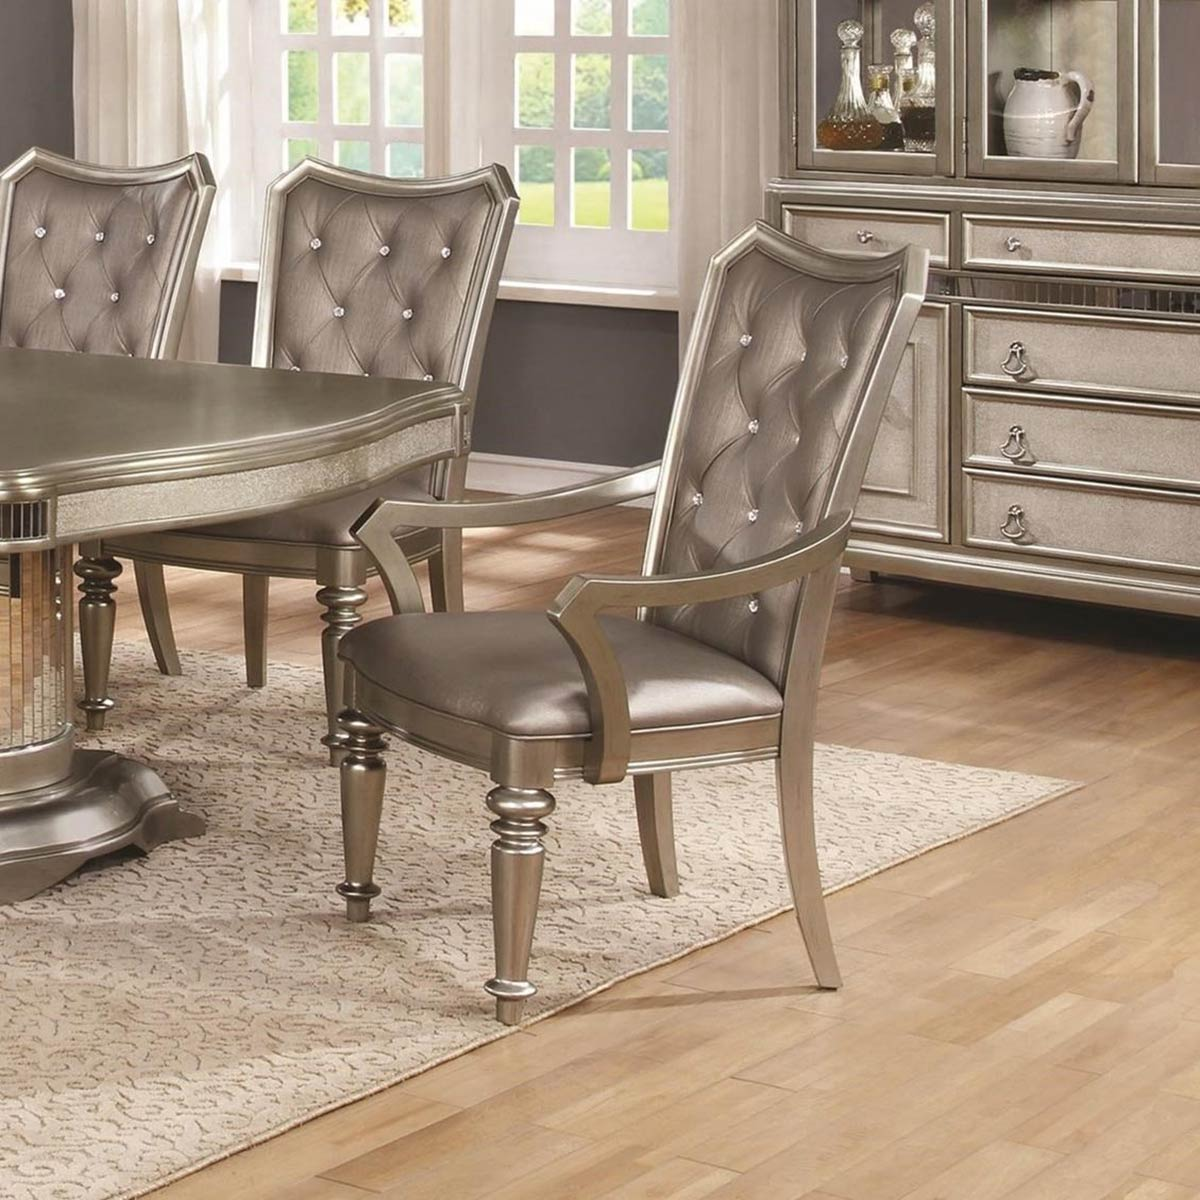 Coaster Danette Arm Chair - Metallic Platinum